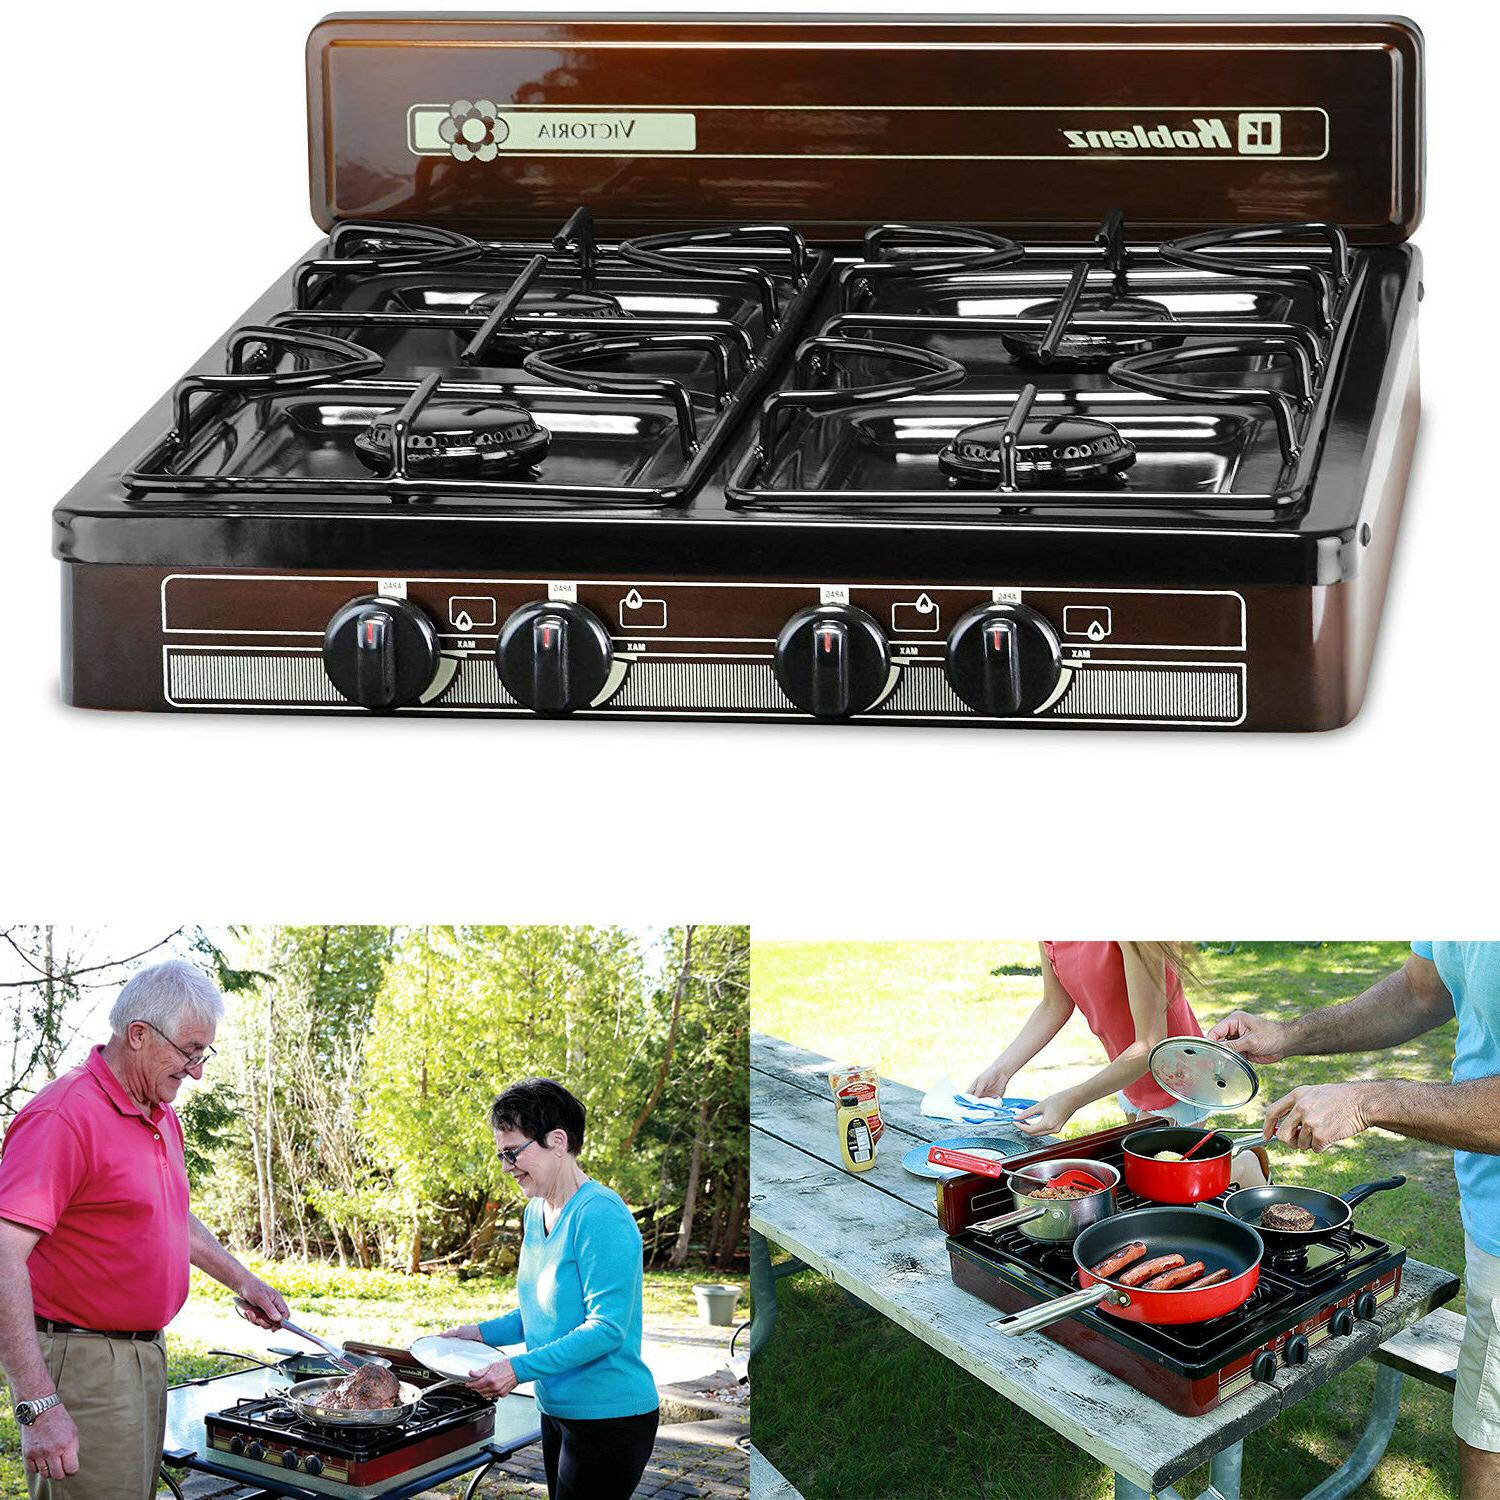 4-Burner Gas Stove Outdoor Cooking RV